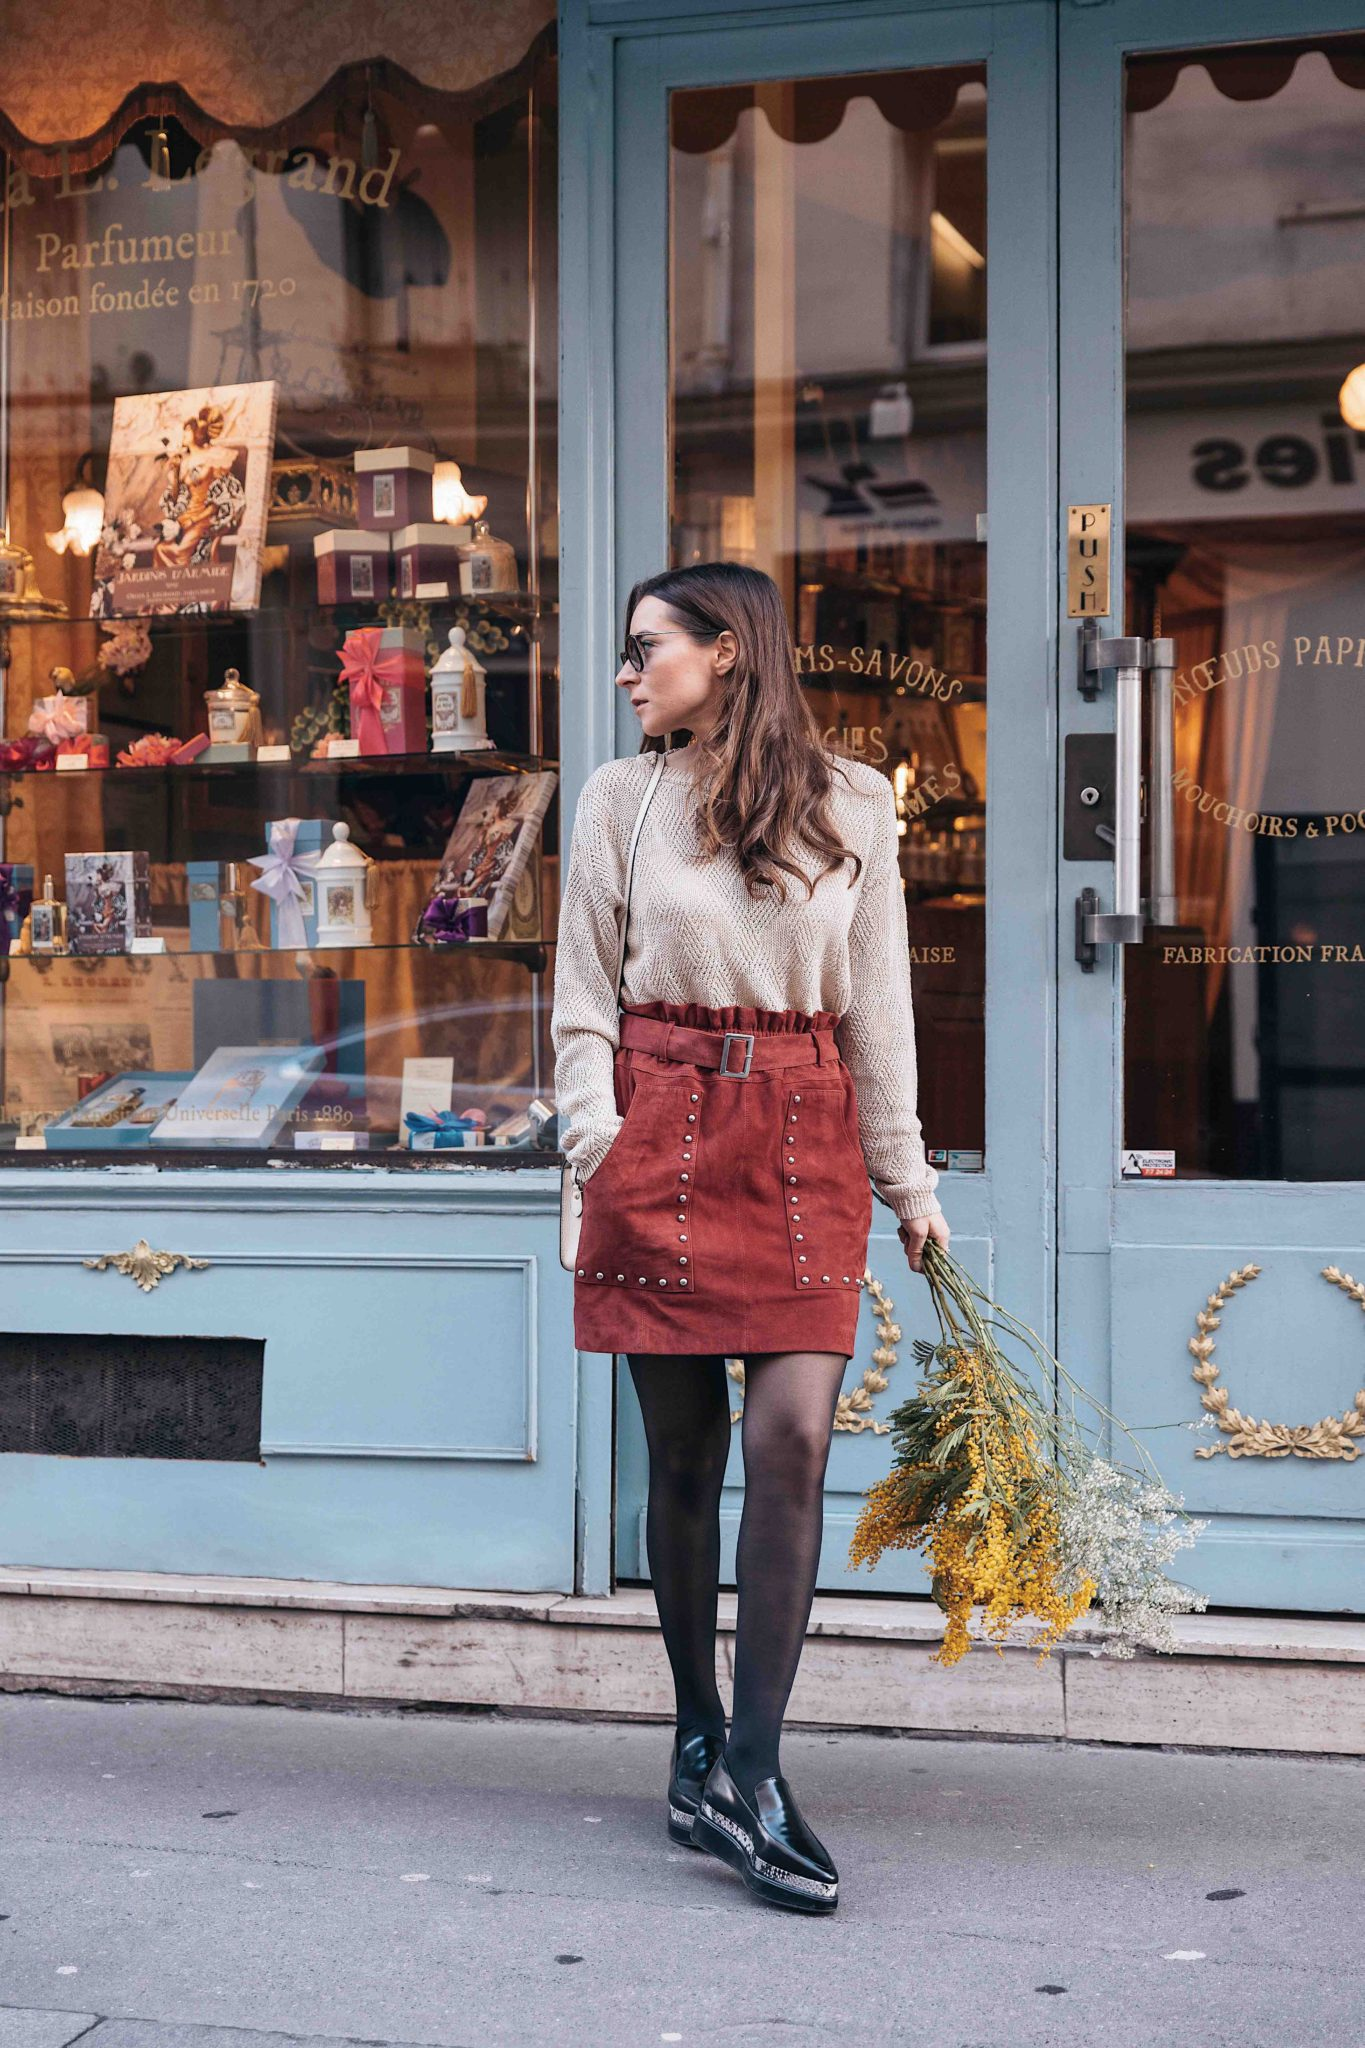 Parisian style by Julia Comil French Fashion Blogger Wearing Seven All Around Platform Loafers - Strathberry Bag - Berenice Skirt and American Vintage Sweater - Save to read more about Seven all around review on Houseofcomil.com